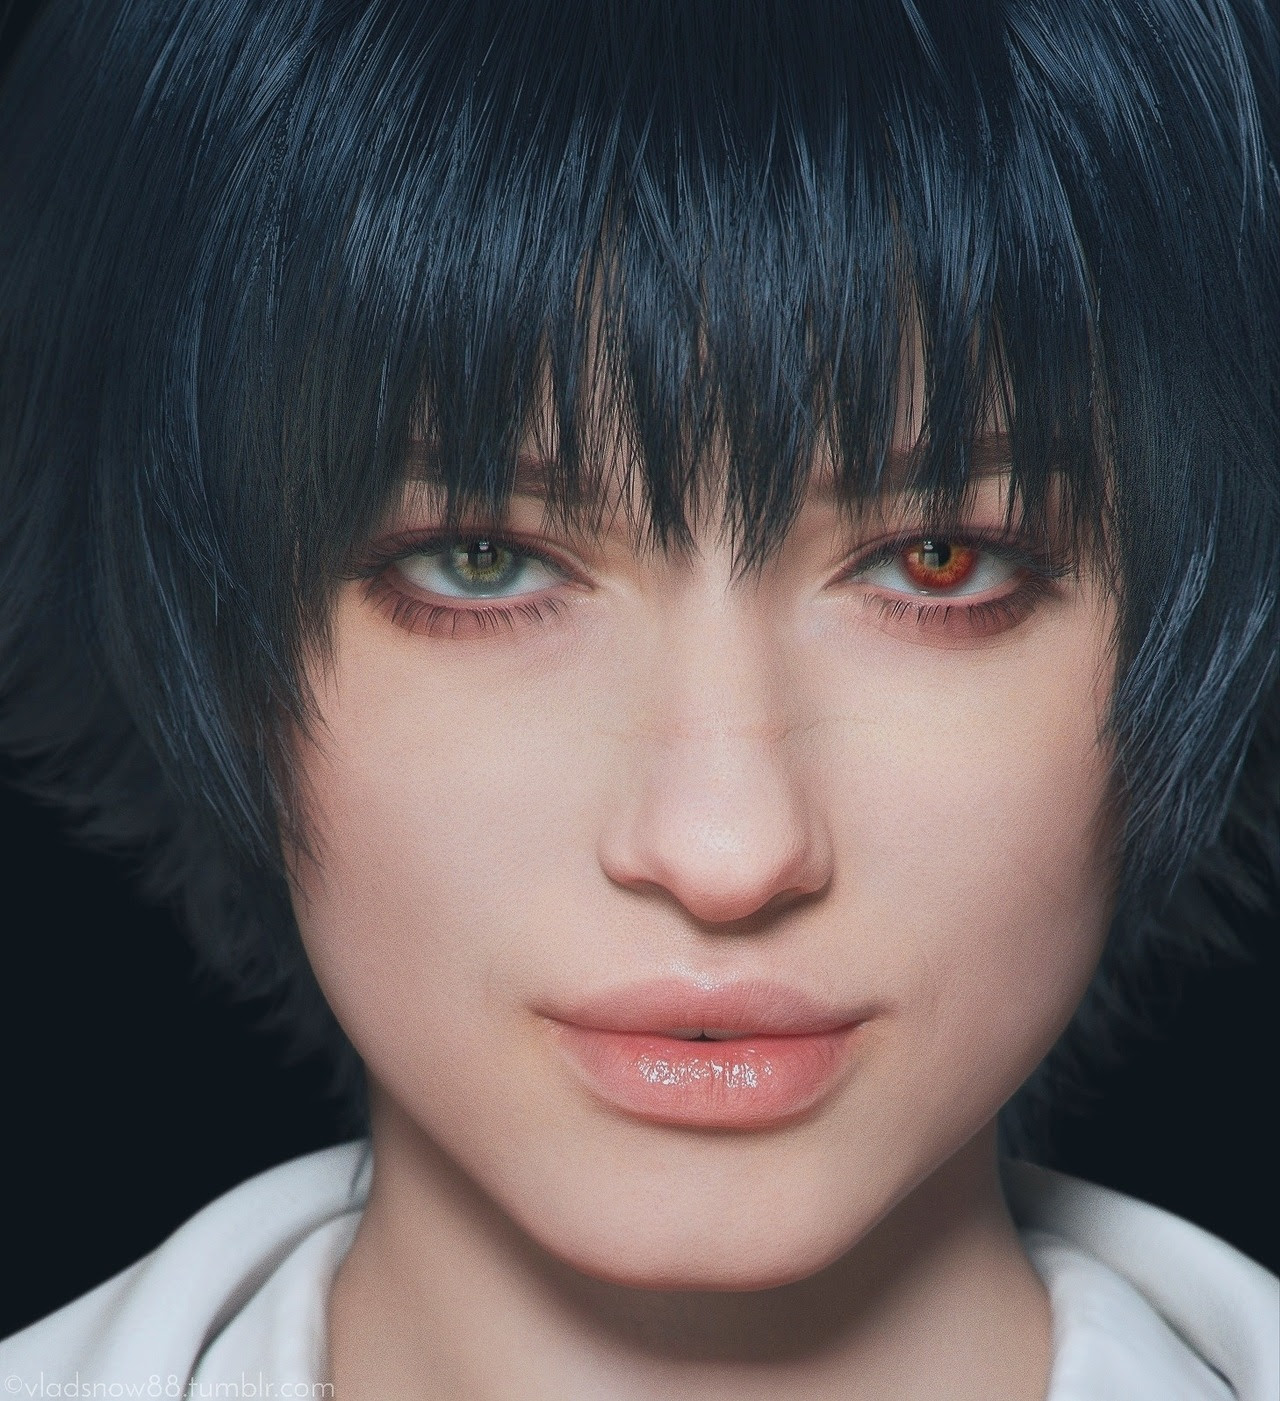 Lady Devil May Cry 5 Devil May Cry Photo 41806355 Fanpop